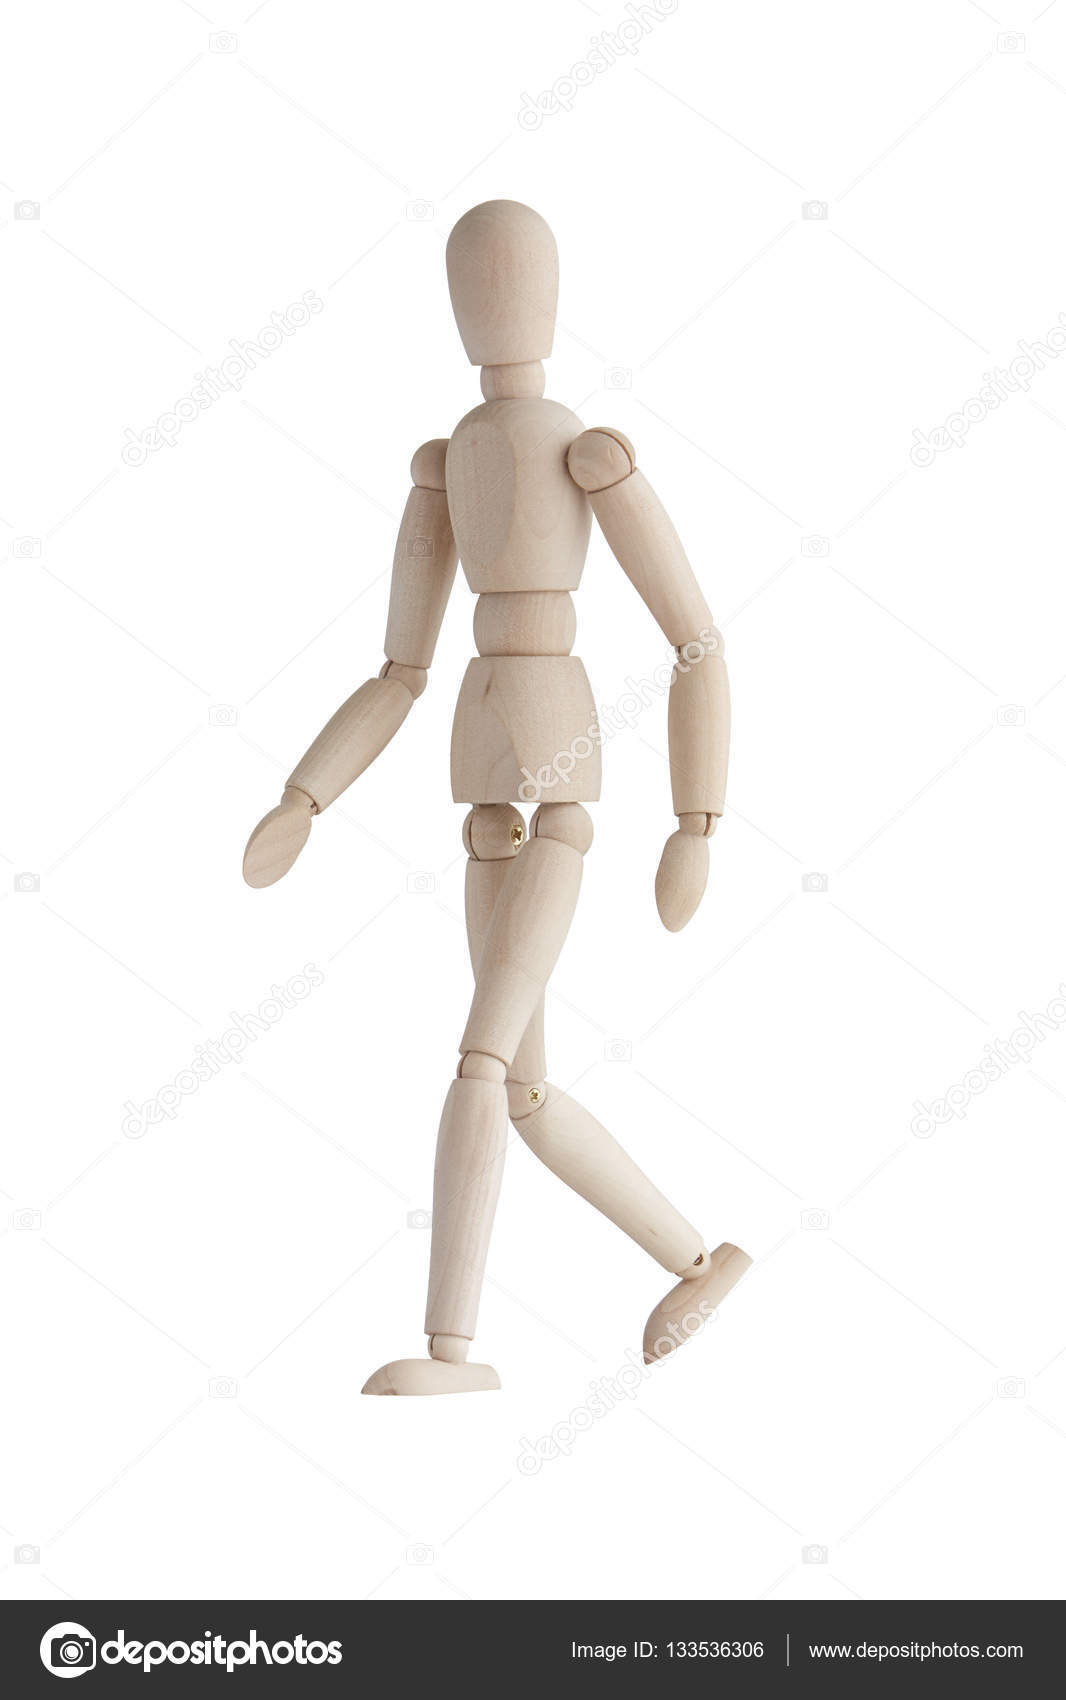 wooden mannequin with walking pose stock photo 123ultra 133536306